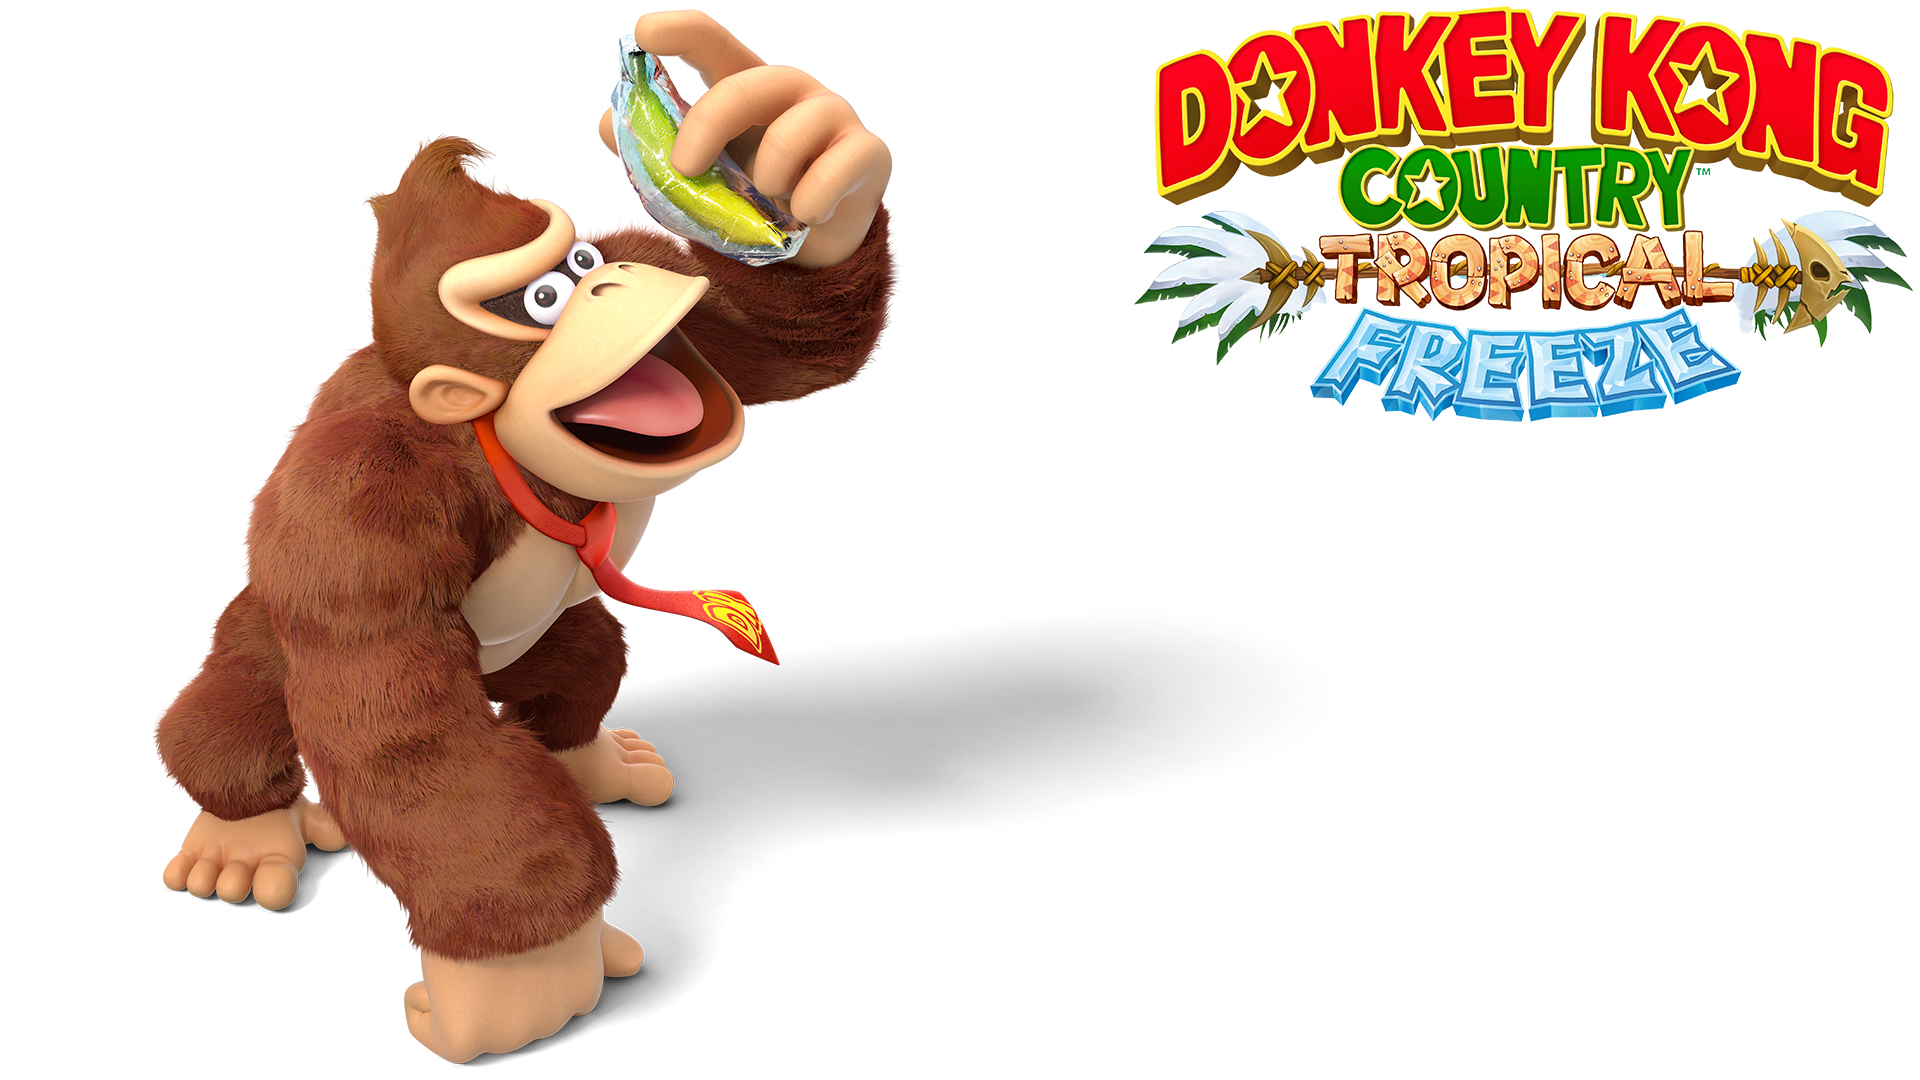 Dkc Tf Wallpaper Donkey Kong By Thelimomon On Deviantart